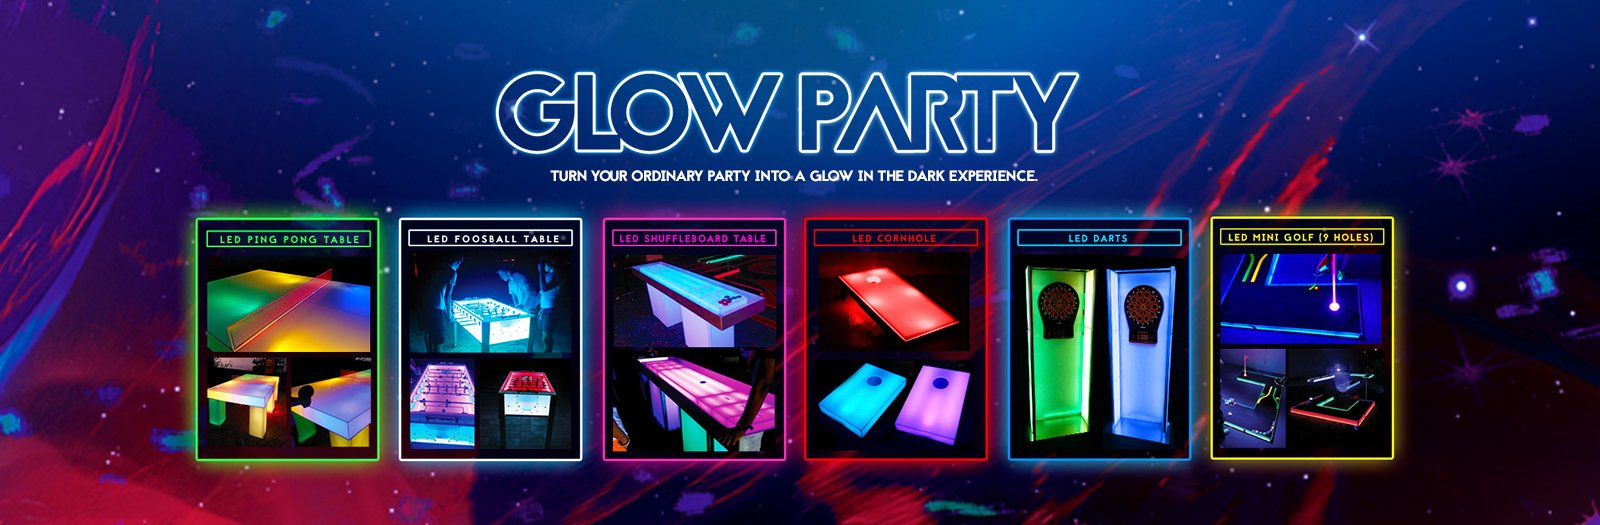 Glow Party by NY Party Works